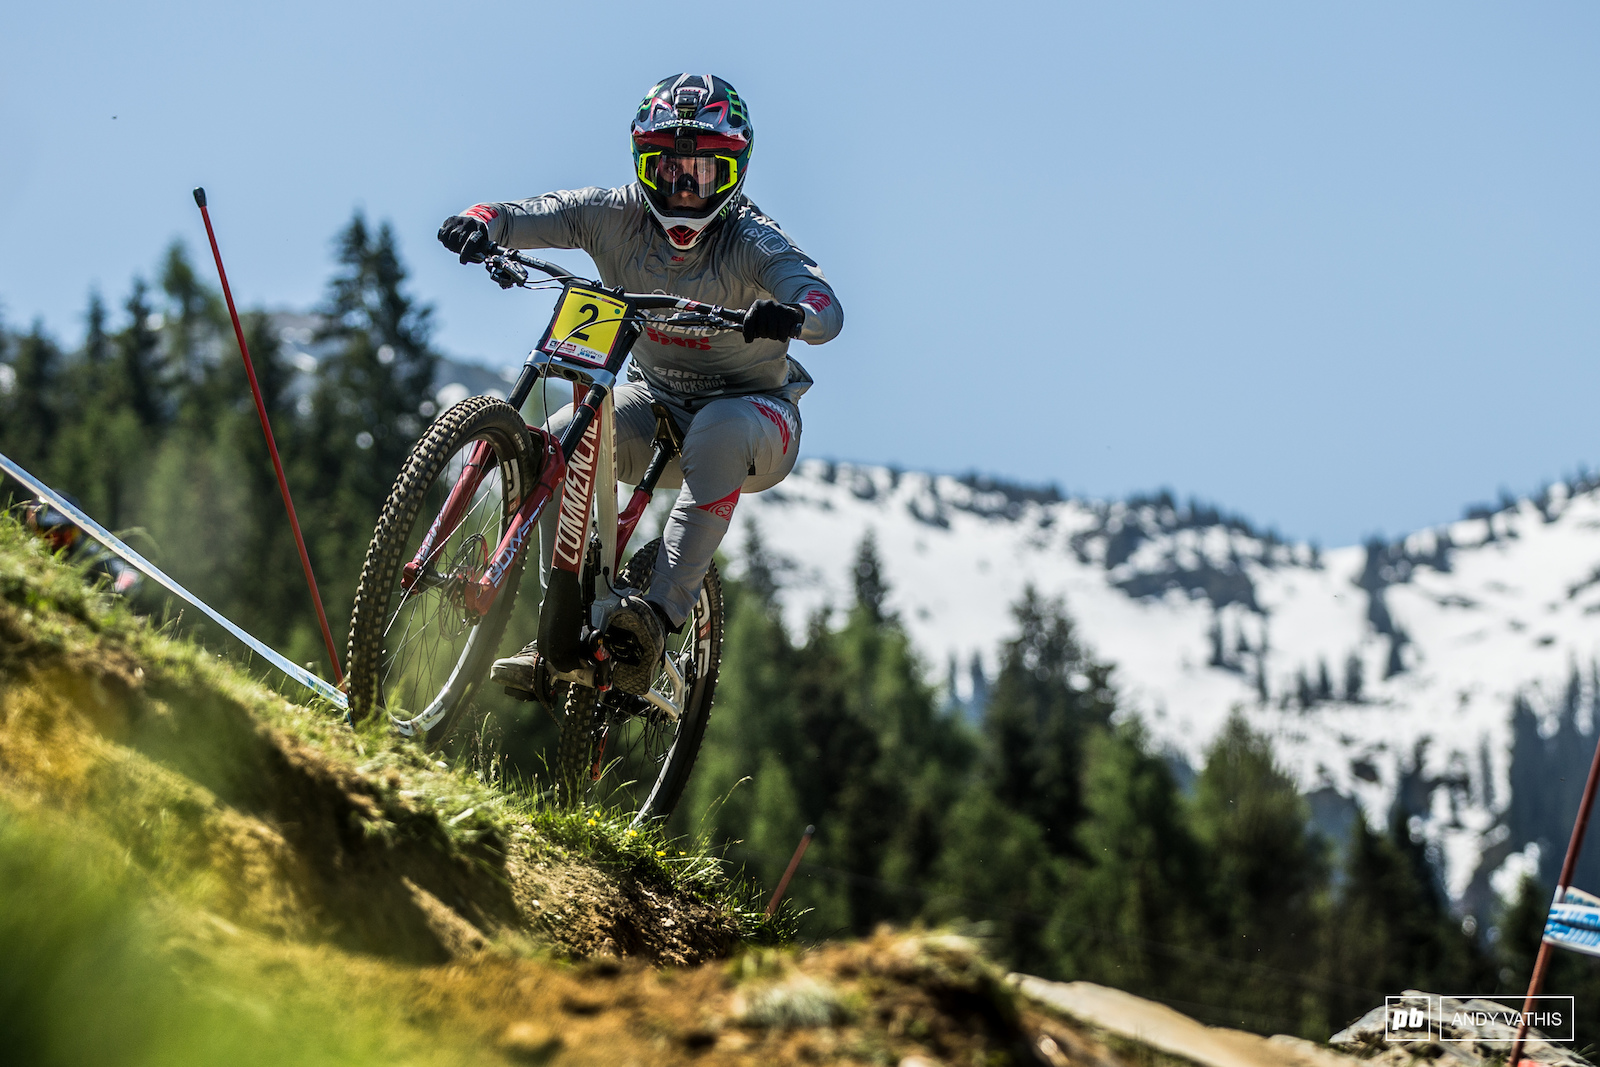 It did not take long for Amaury Pierron to find his pace.